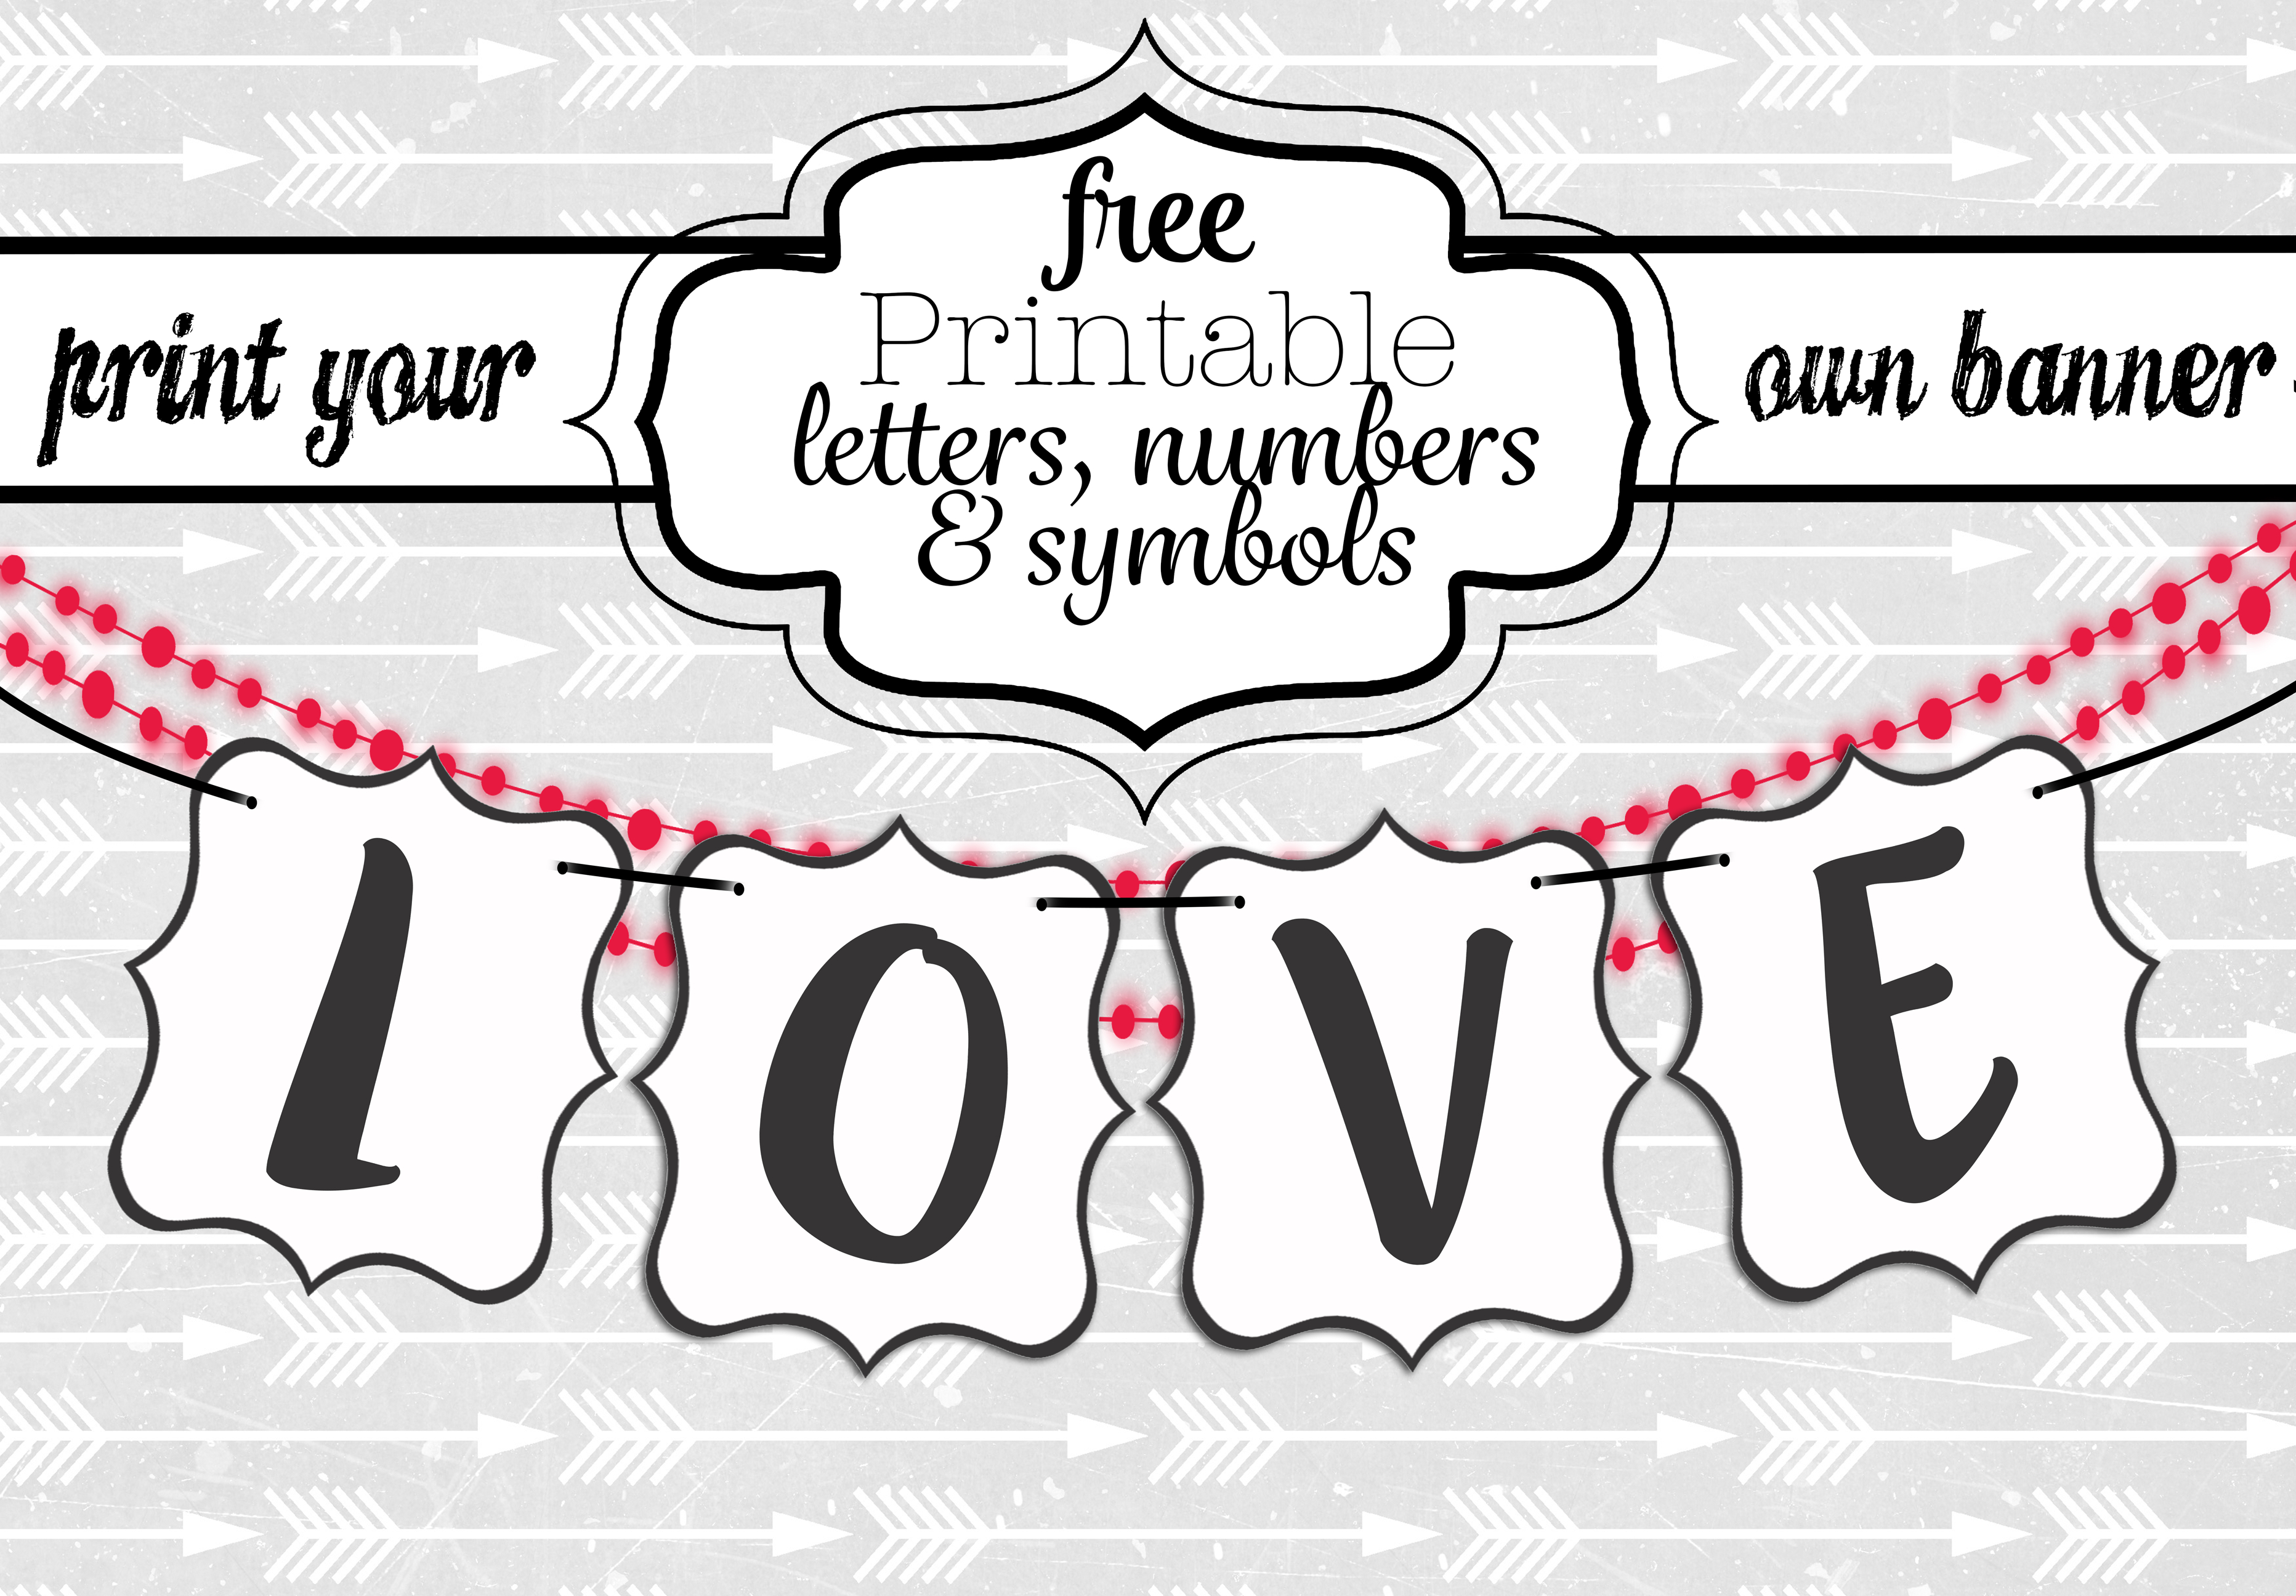 Free Printable Black And White Banner Letters   Diy Swank - Free Printable Wedding Banner Letters